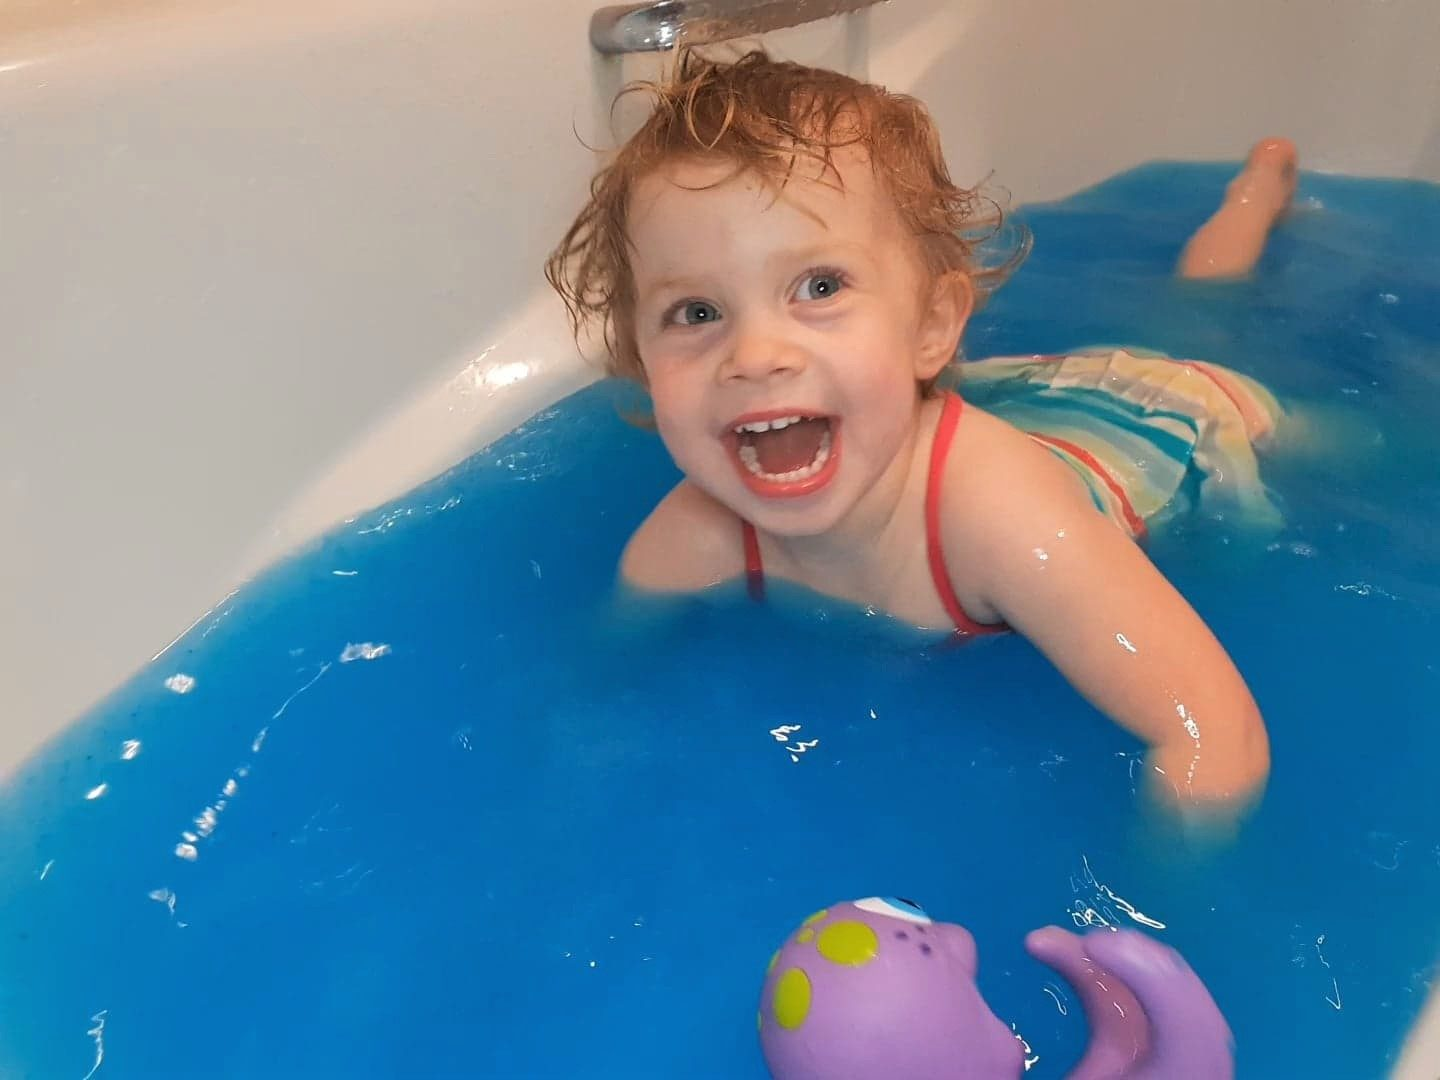 Toddler swimming in Blue Goo slime baff